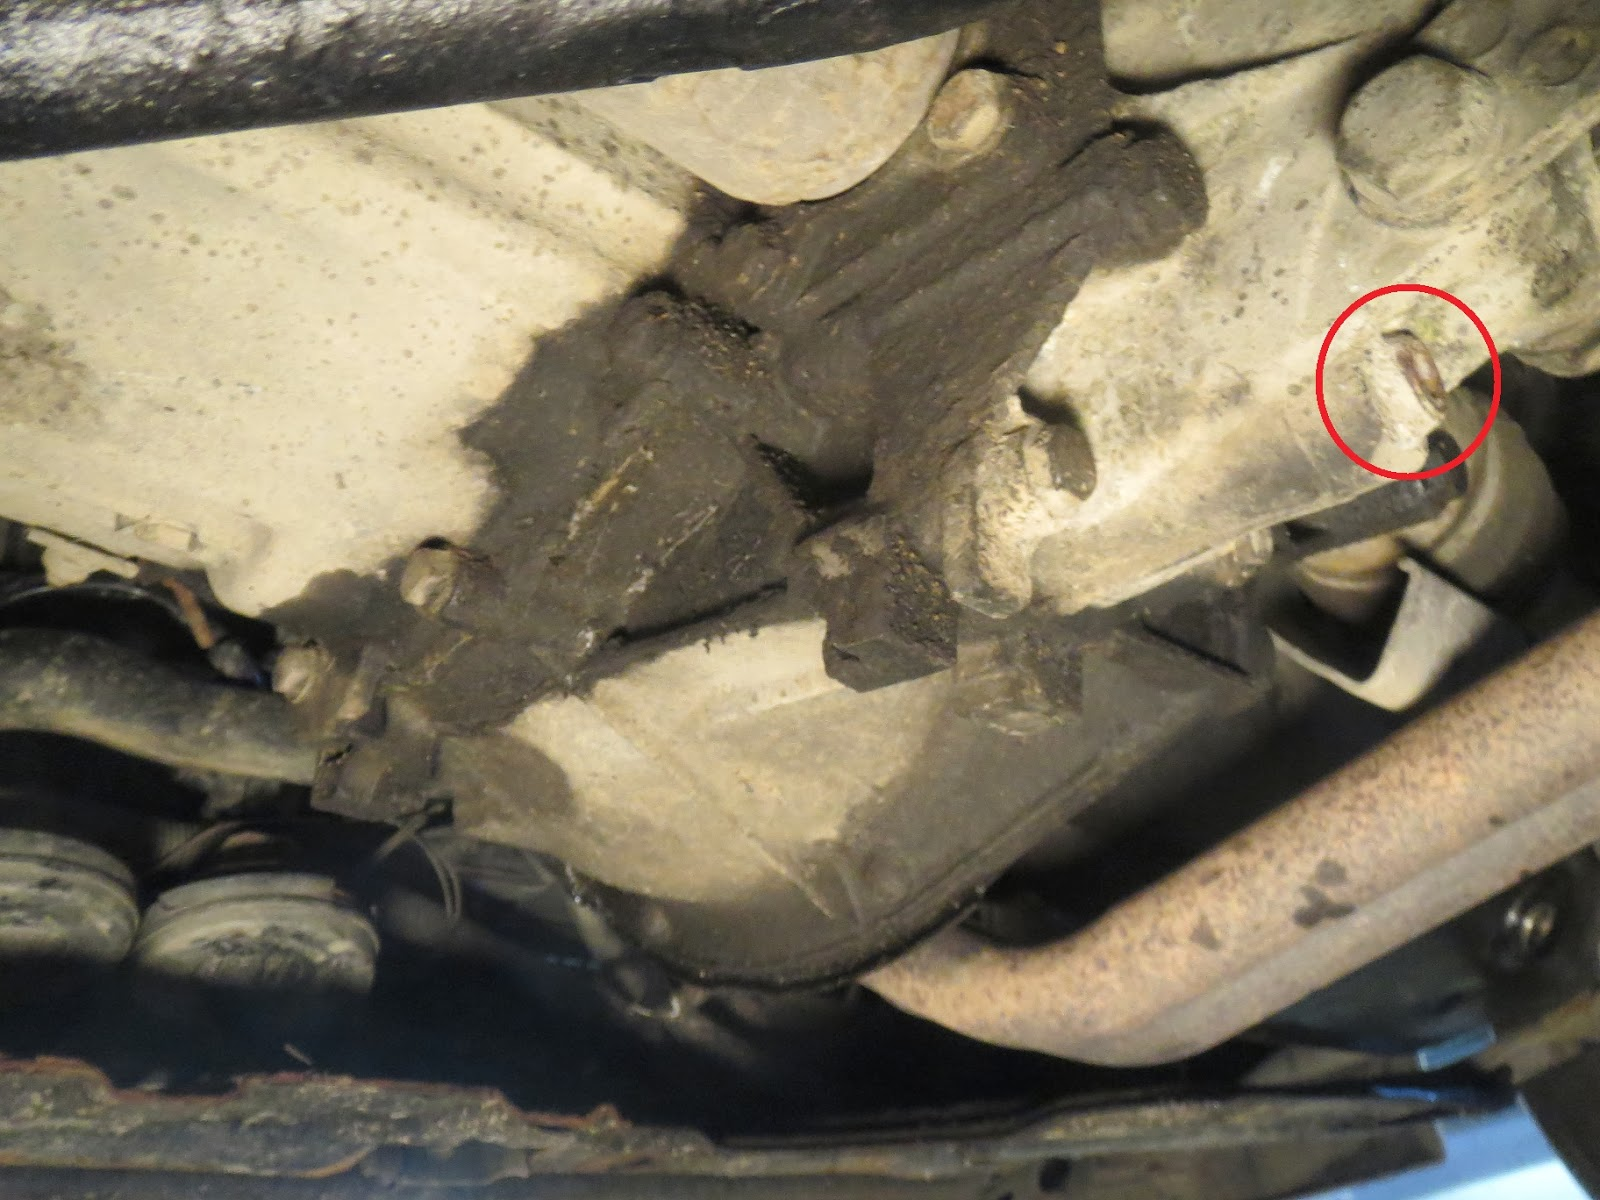 Fiat Uno 1993 gearbox oil draining bolt location